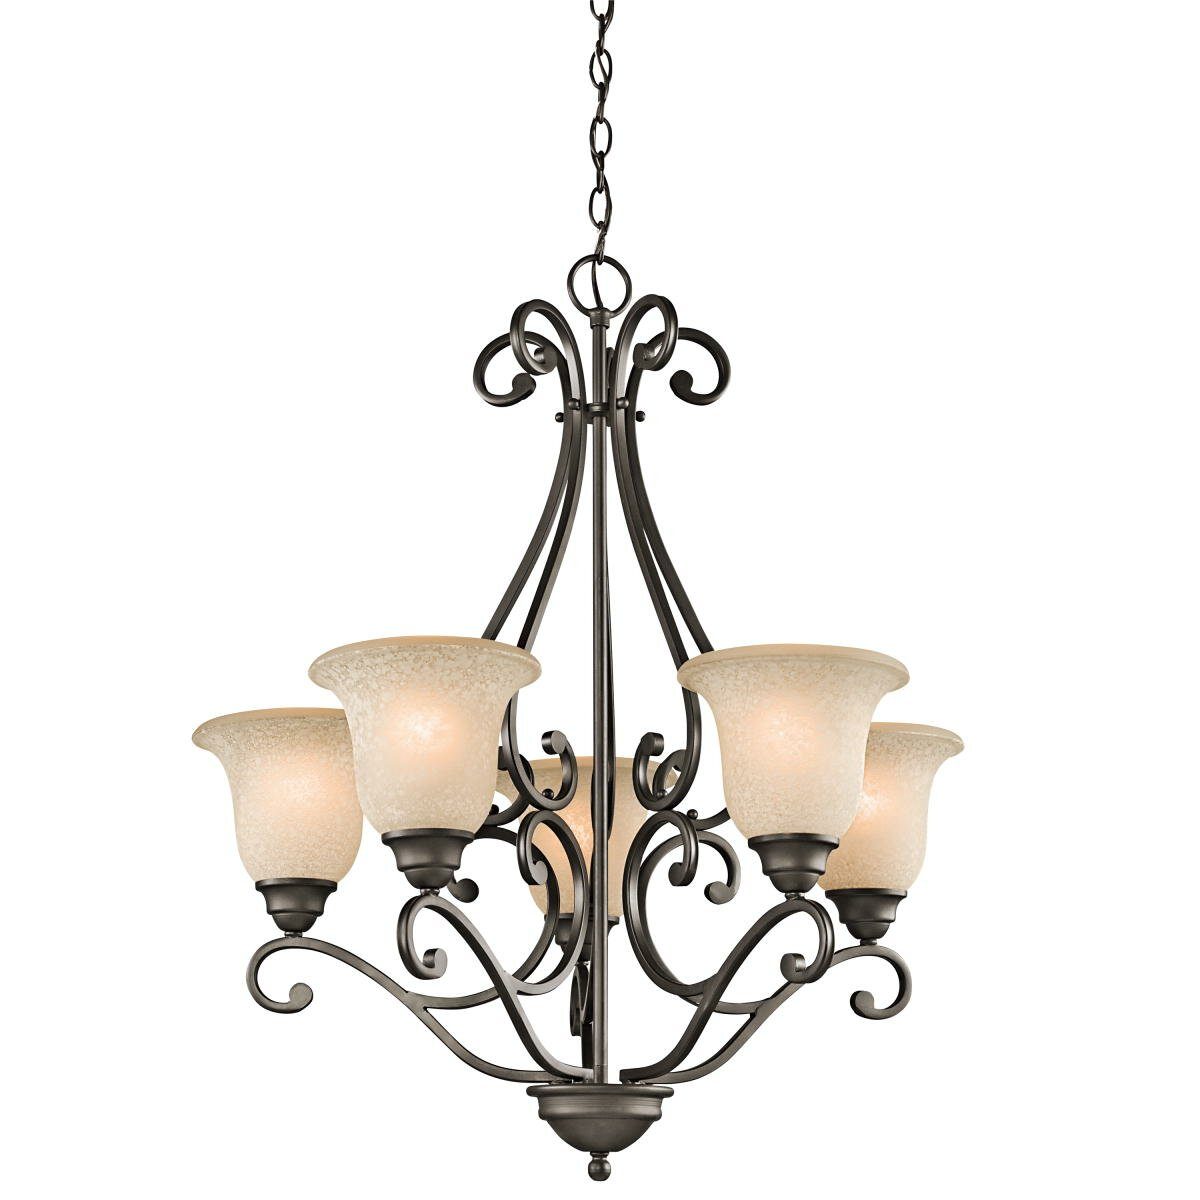 Kitchler: Kichler Camerena 5 Light Chandelier & Reviews